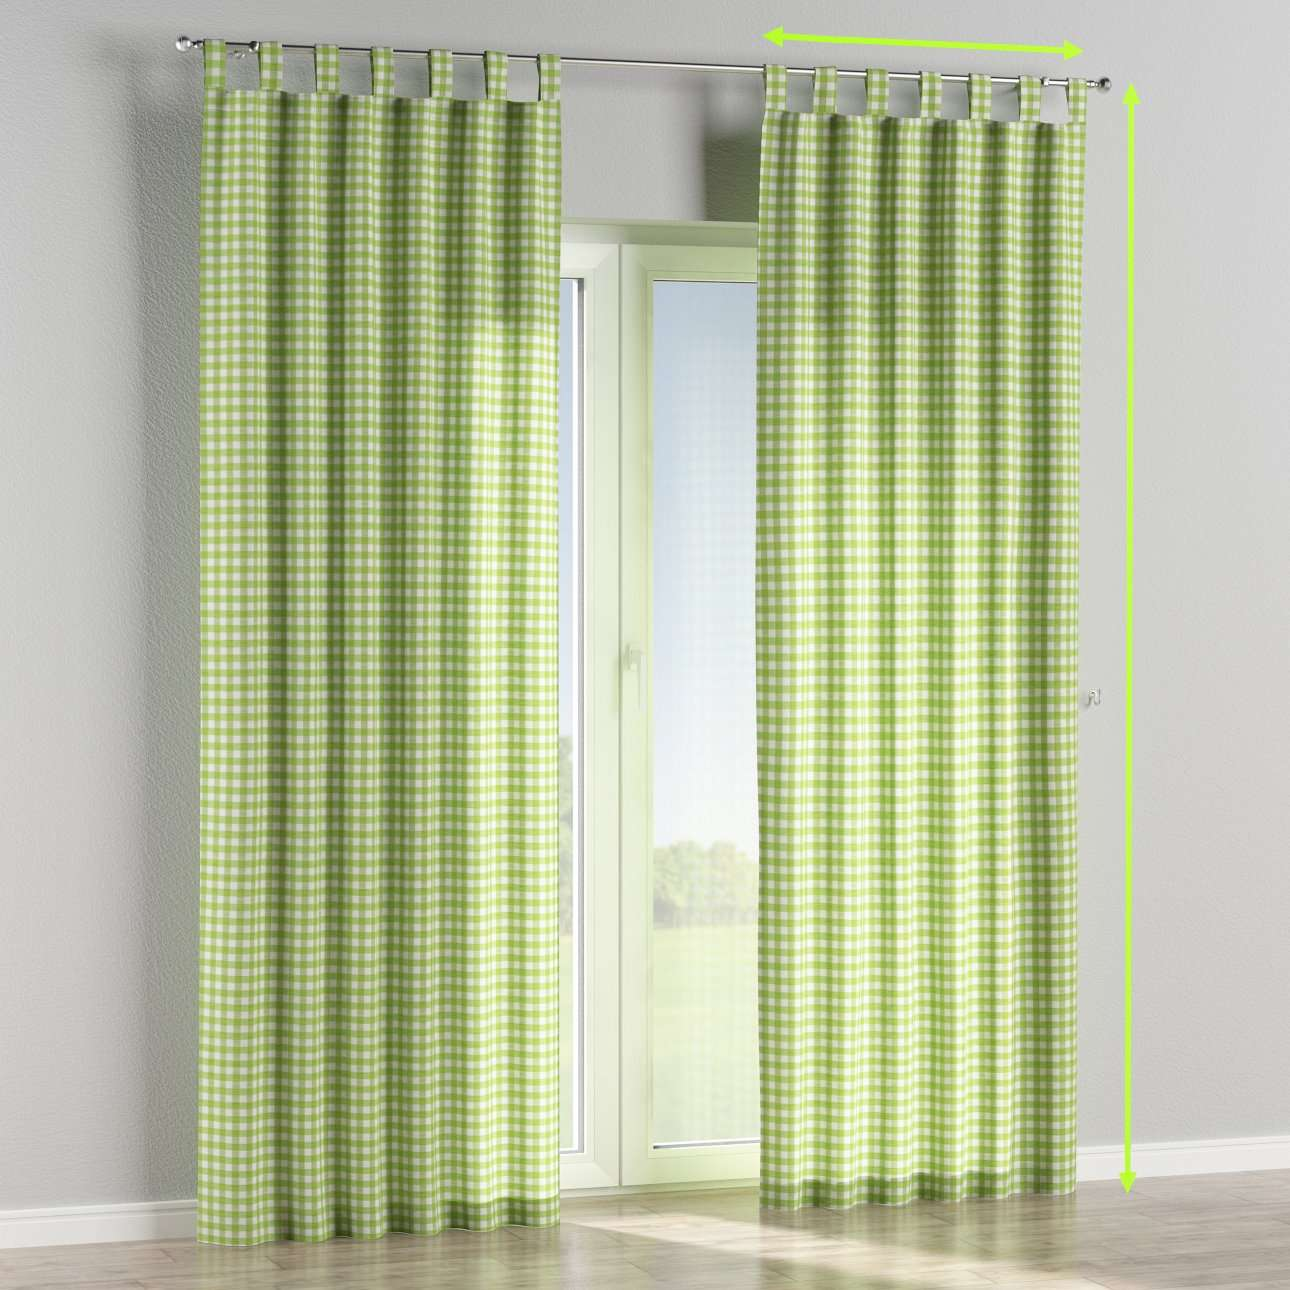 Tab top curtains in collection Quadro, fabric: 136-34